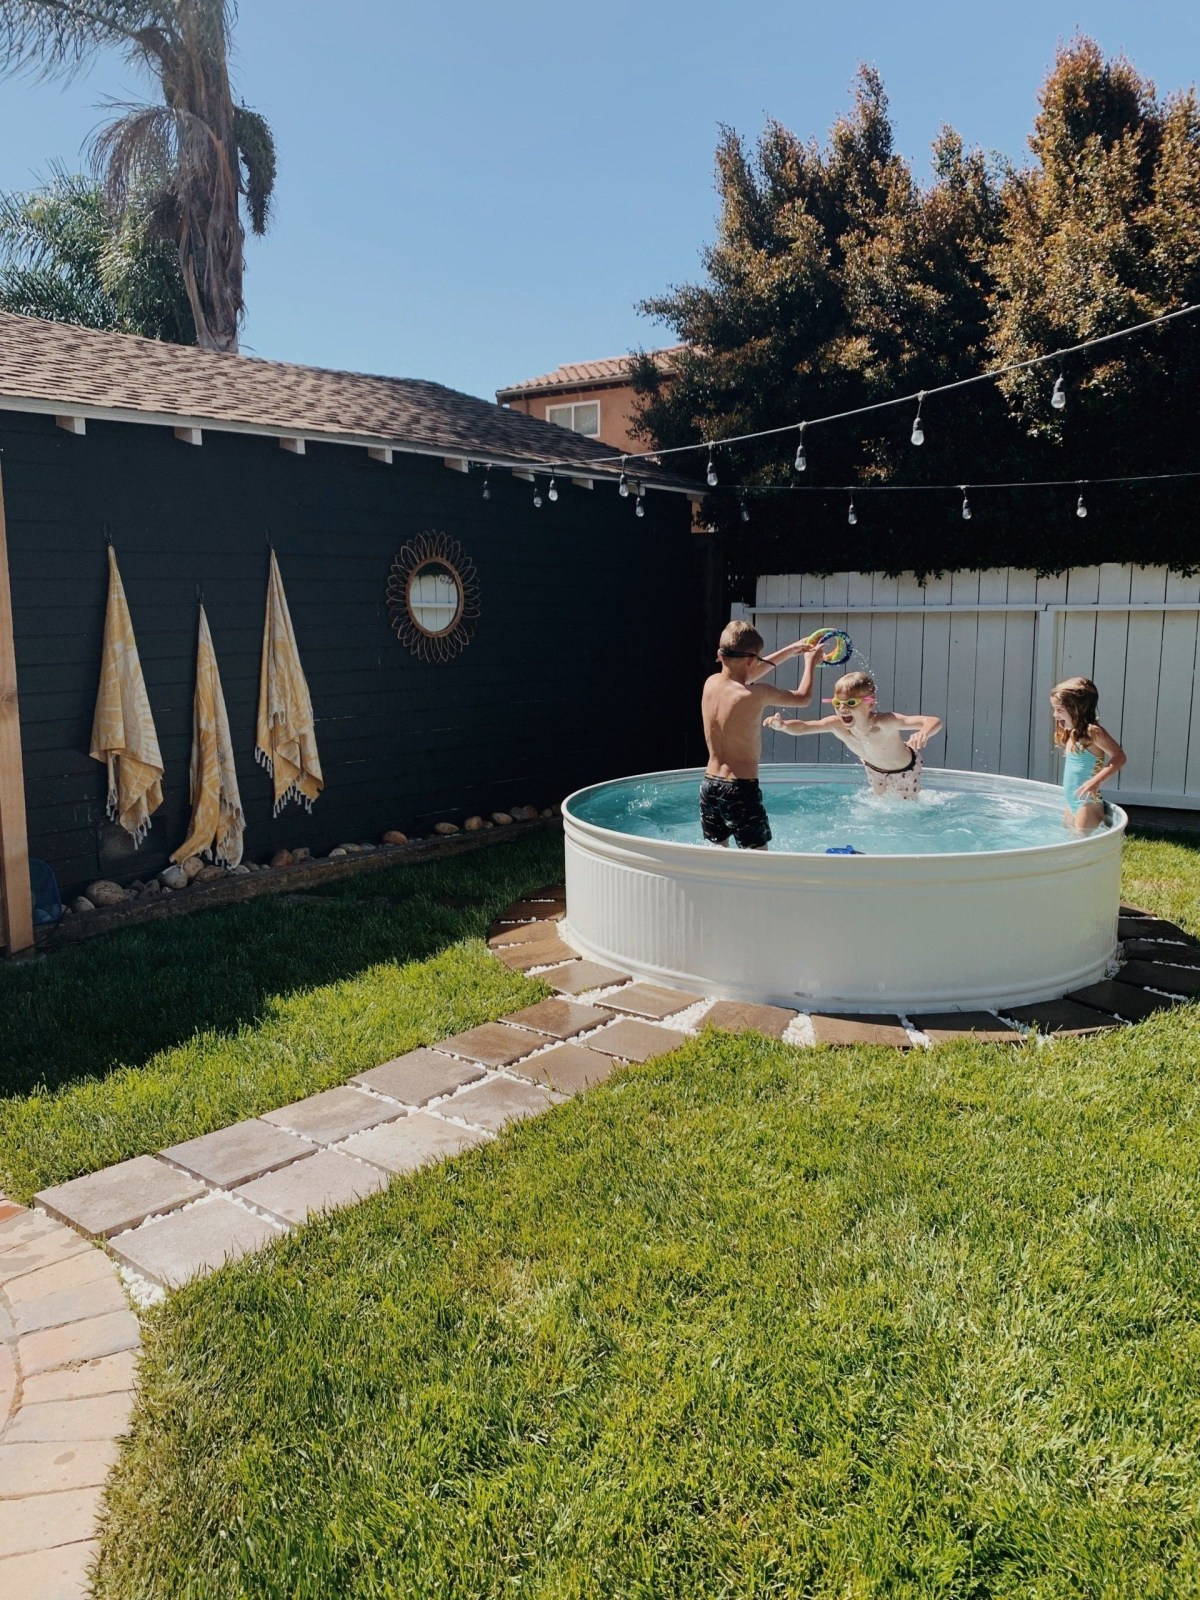 White tank pool DIY Swimming Pool Ideas To Make Your Summer Better With Relax And Unwind